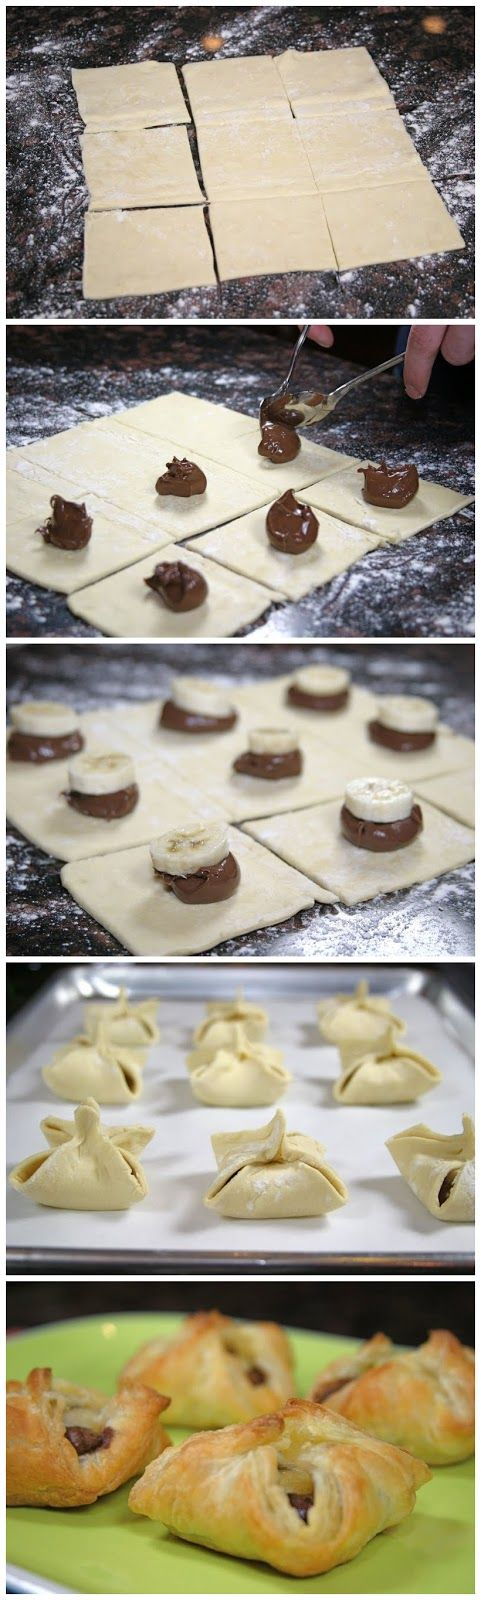 World Nutella Day! These are Nutella and banana filled pastry purses. Easy to assemble and fast to make.     Ingredients:   1 sheet frozen p...